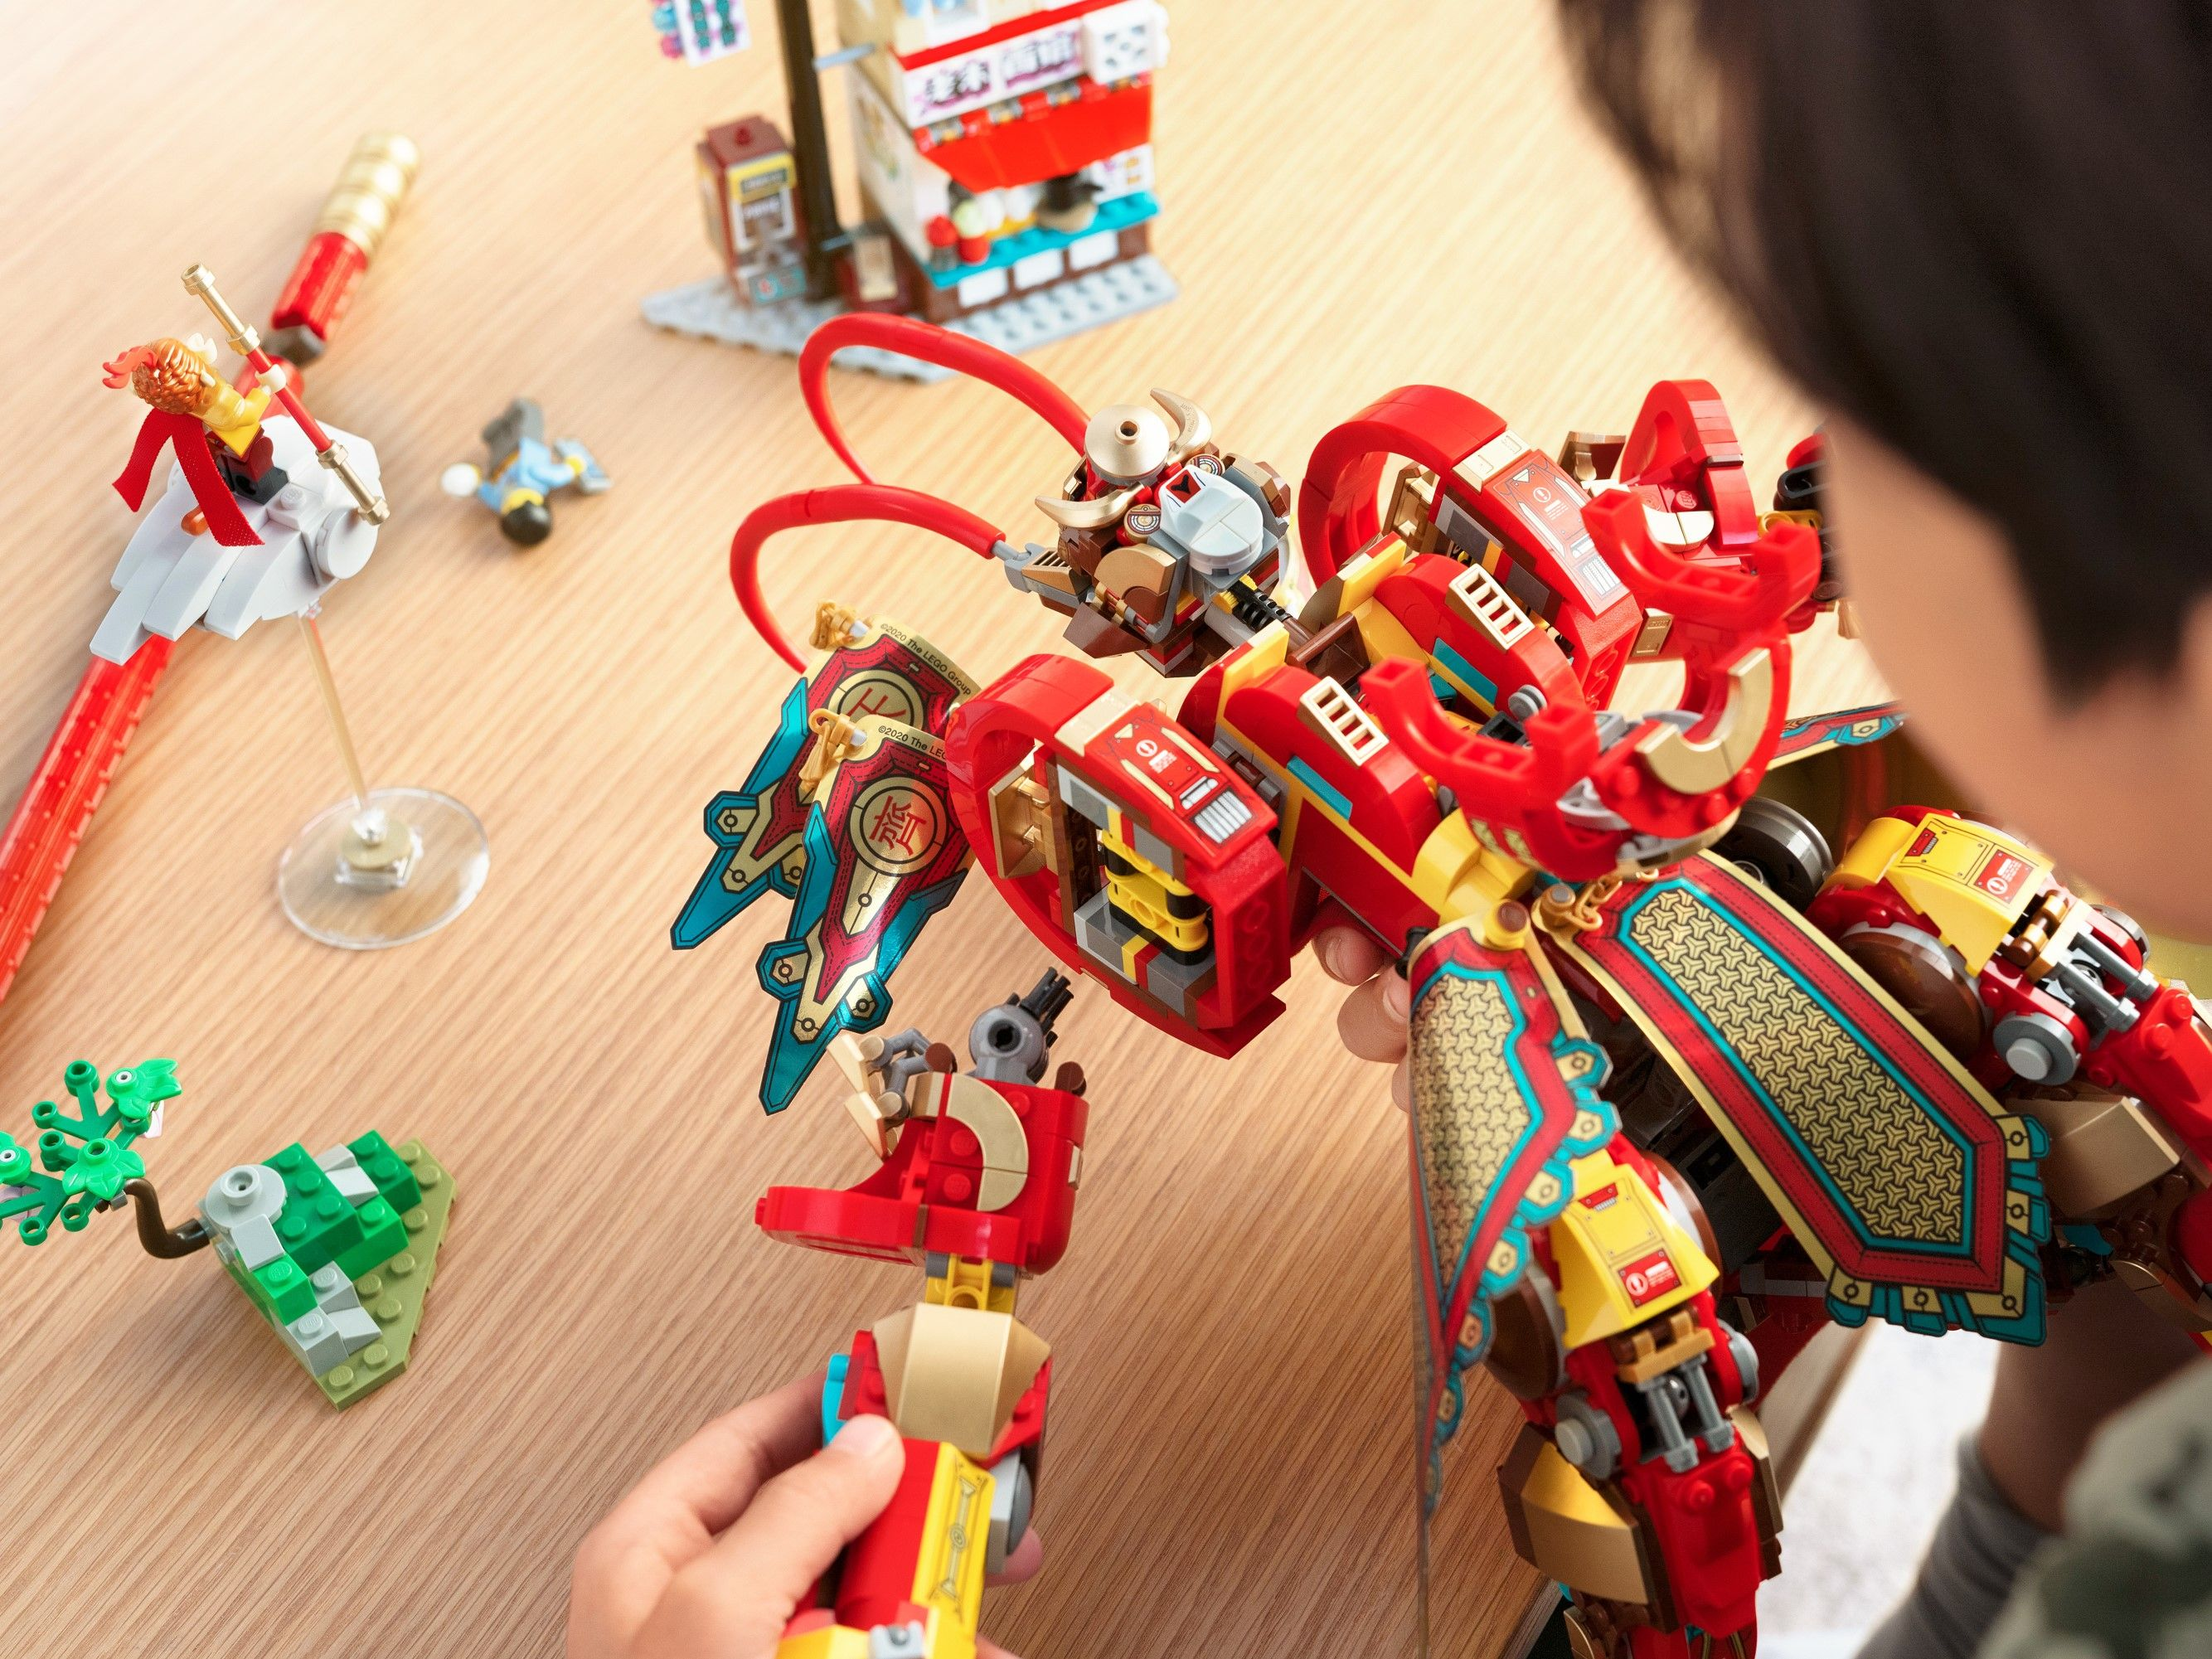 LEGO Monkie Kid 80012 Monkey King Mech LEGO_80012_alt10.jpg